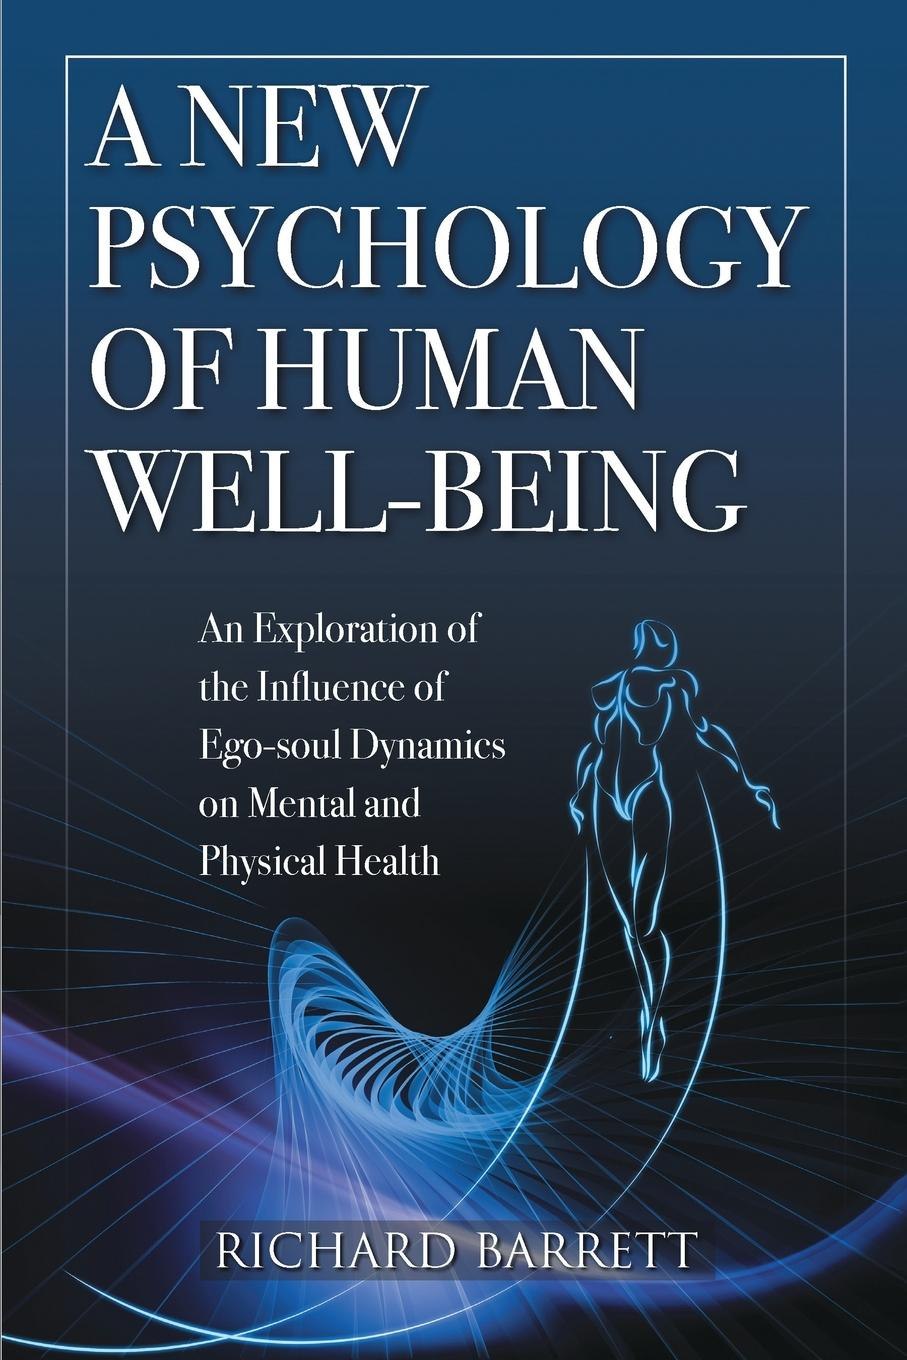 Richard Barrett A New Psychology of Human Well-Being. An Exploration of the Influence of Ego-Soul Dynamics on Mental and Physical Health william henry pyle the science of human nature a psychology for beginners